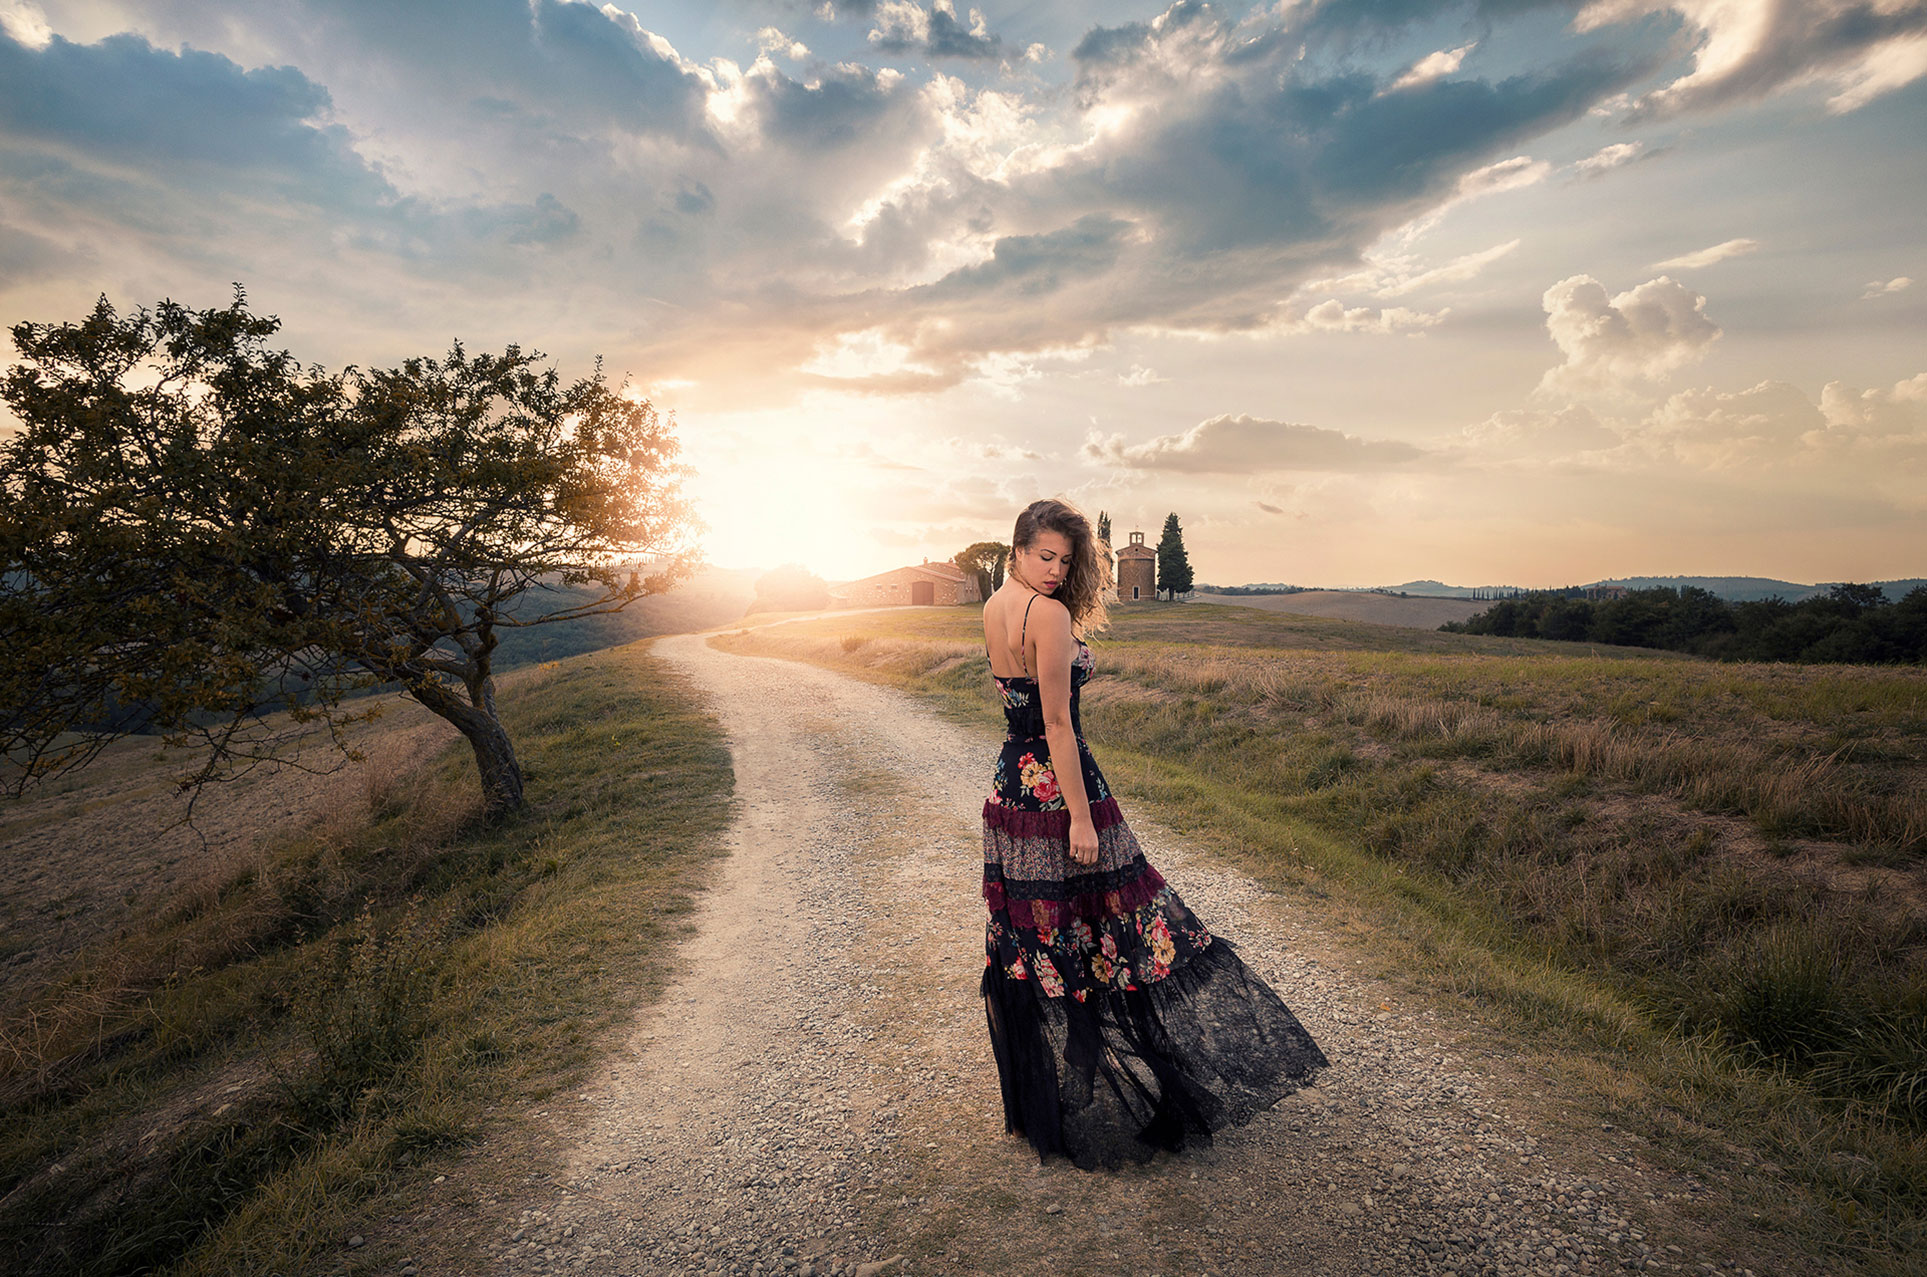 Модная фотопрогулка по Тоскане, Италия / Elisabete Martins by Vitor Murta - Fashion and Travel Photo Shoot in Tuscany, Italy